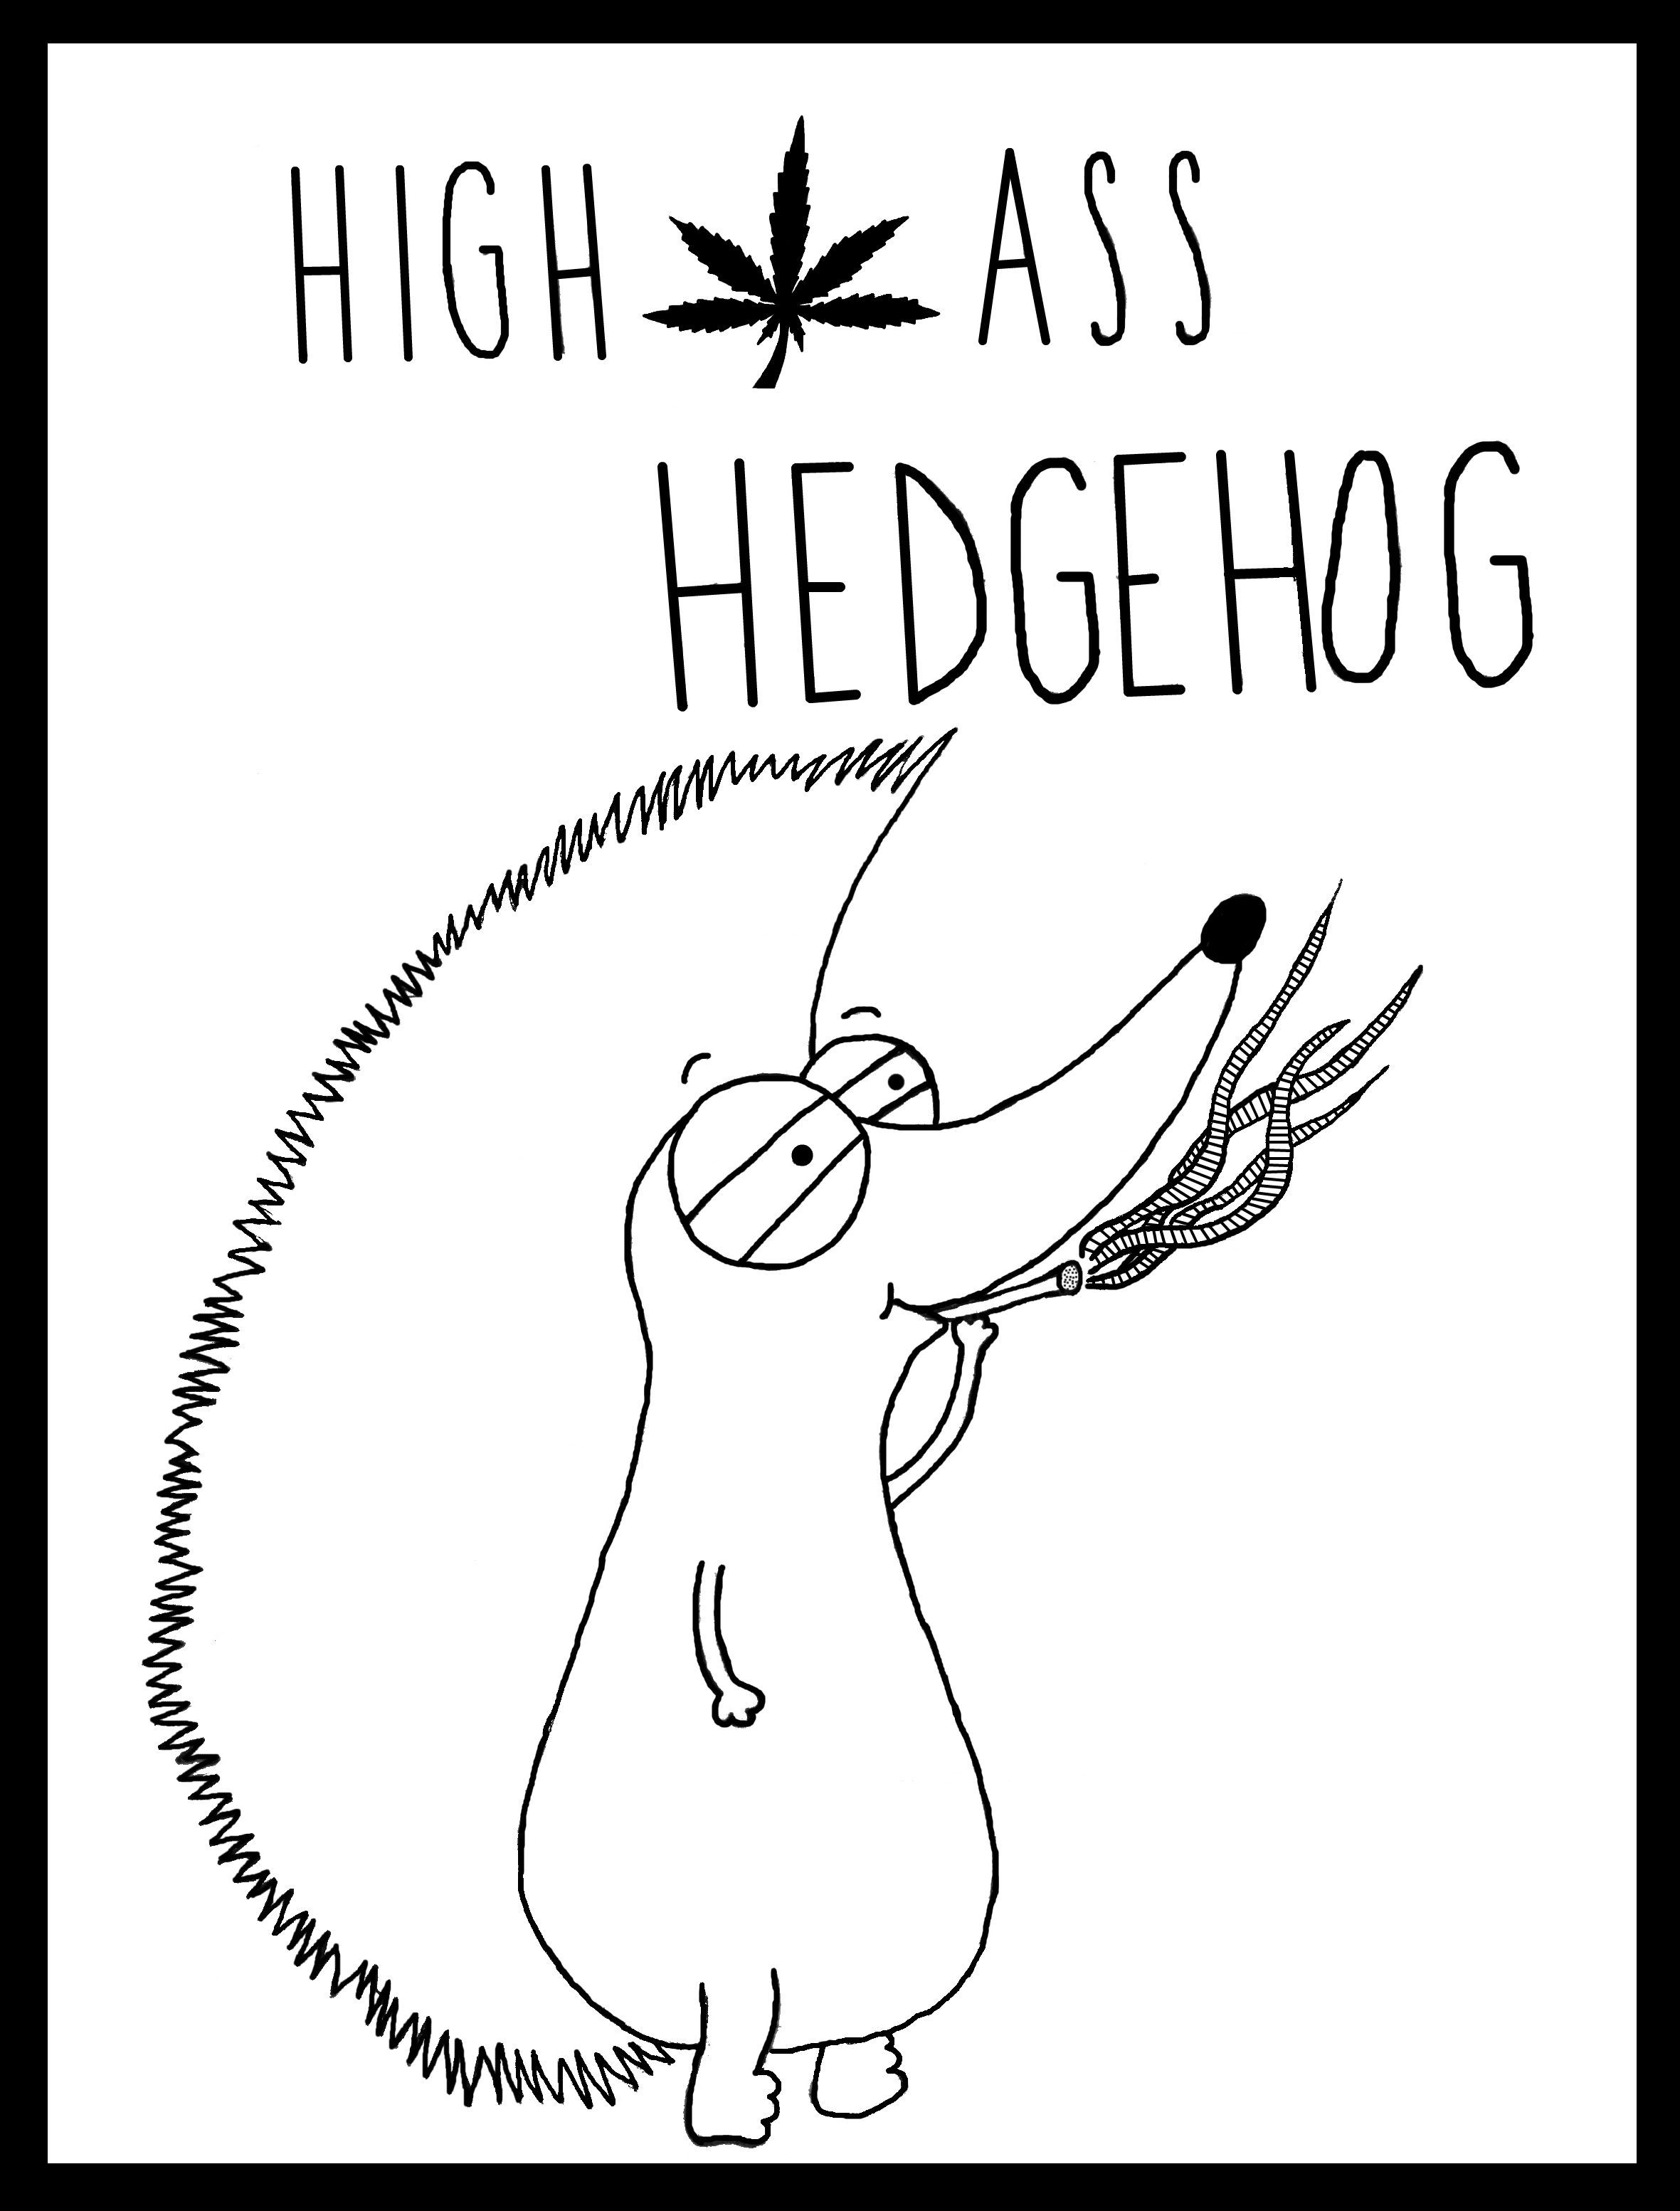 High Ass Hedgehog #stoner #weed #high #love #peace | Chakra Squares ...